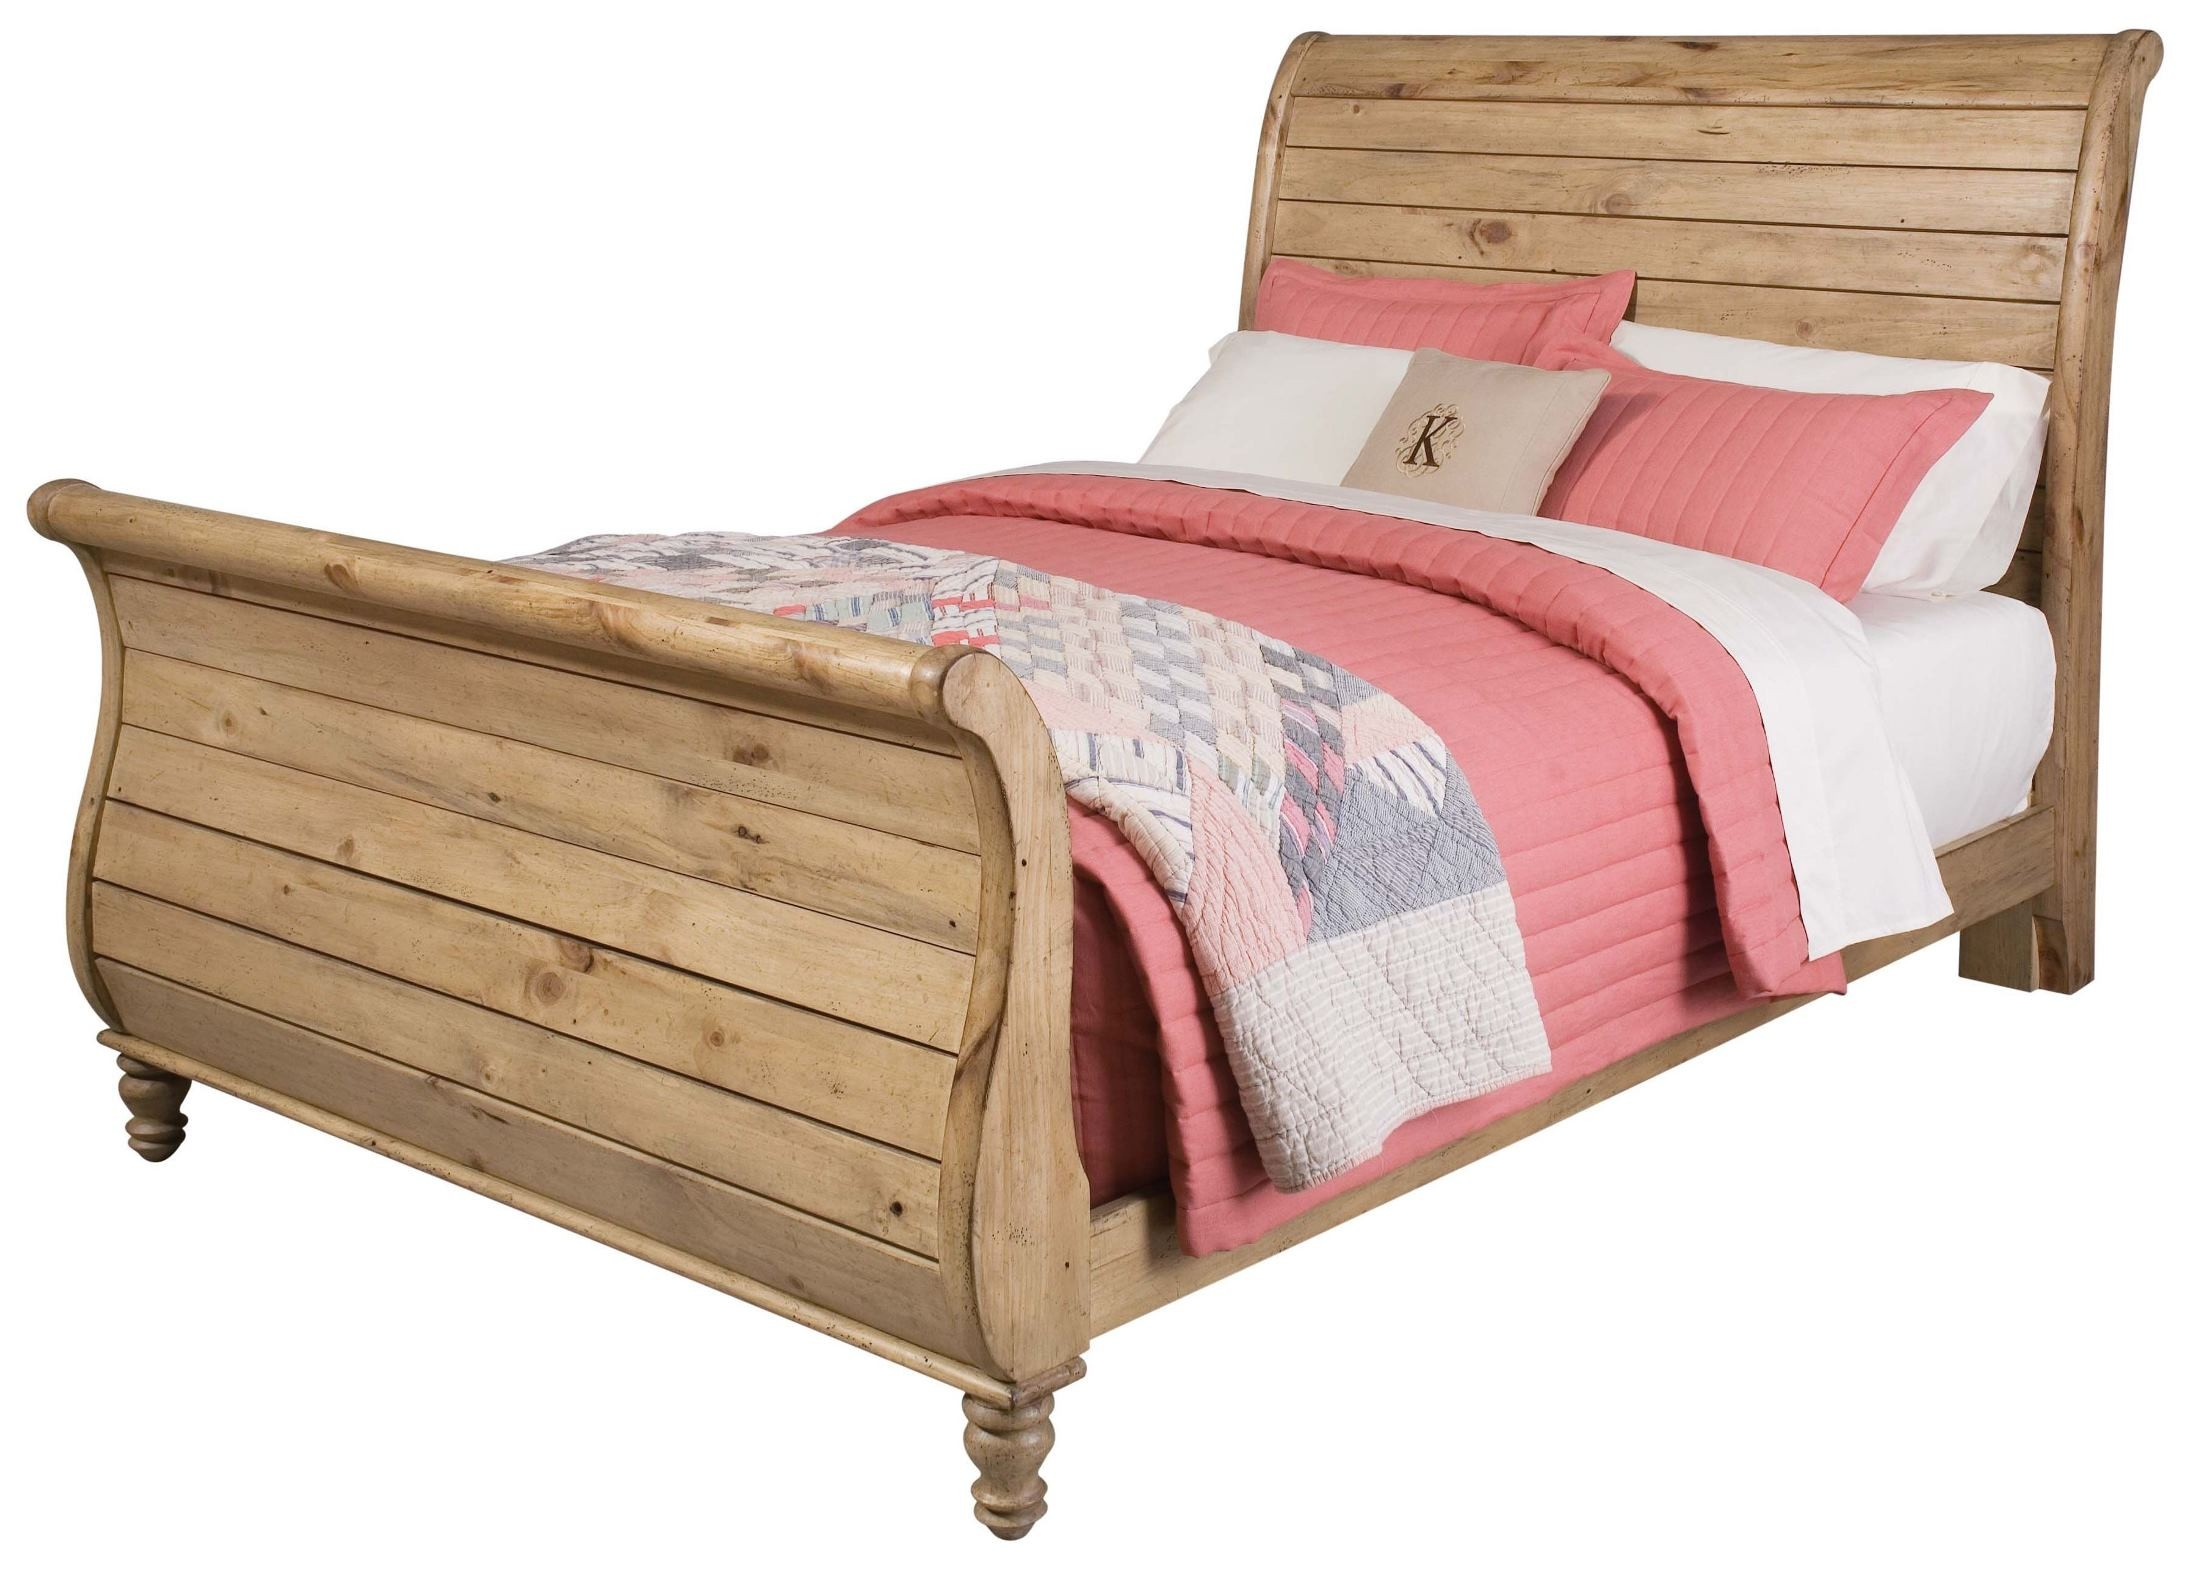 Homecoming vintage pine queen sleigh bed from kincaid 33 for 3 6 bed